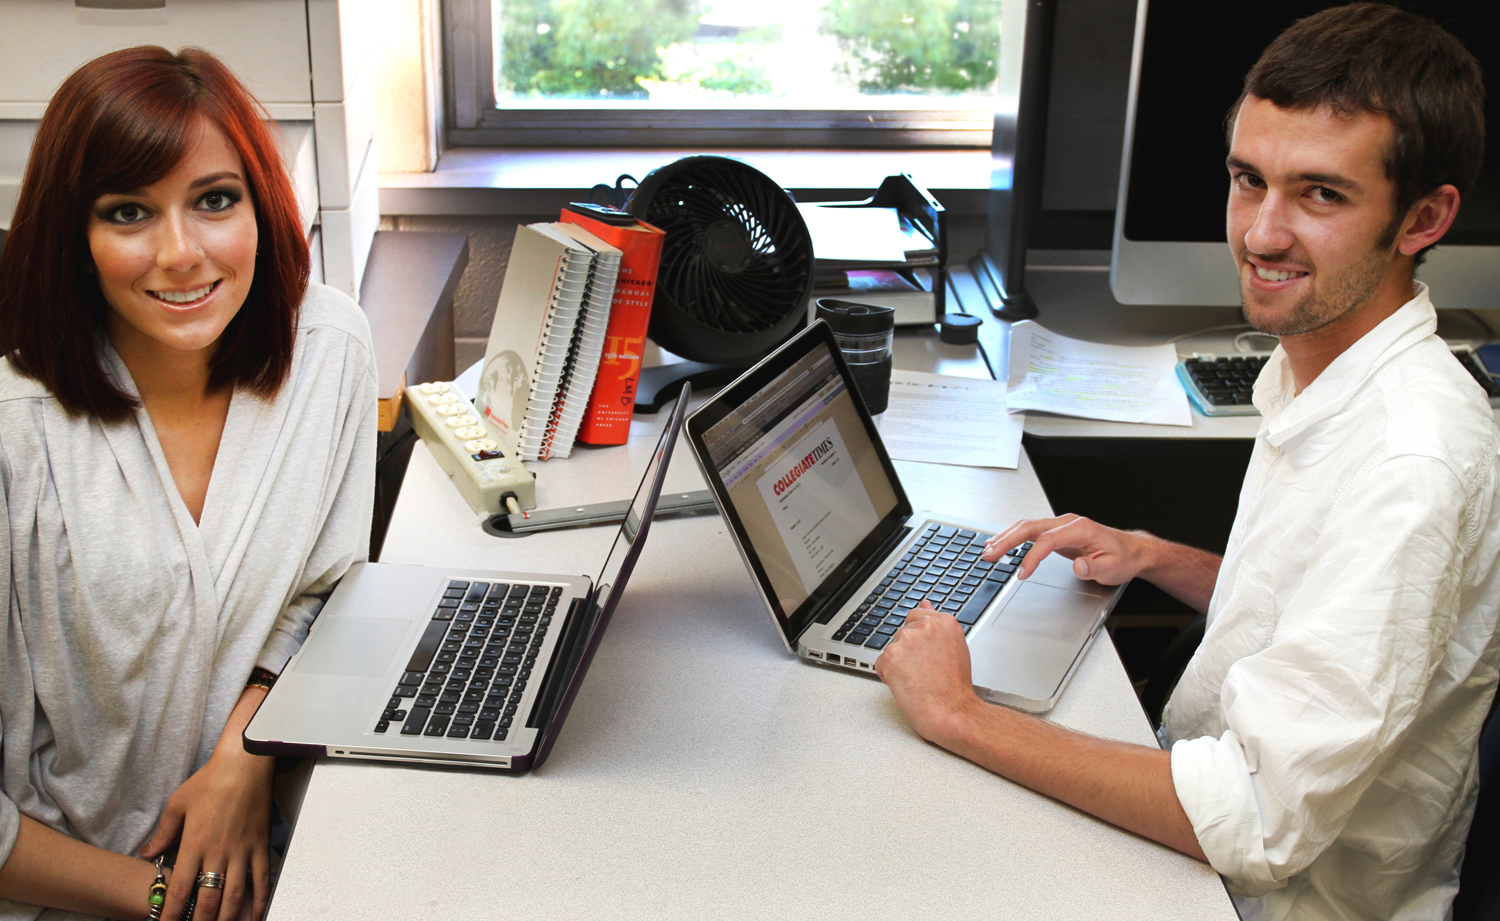 Collegiate Times Managing Editor Lindsey Brookbank and Editor-In-Chief Zach Crizer together in the newspaper's office.